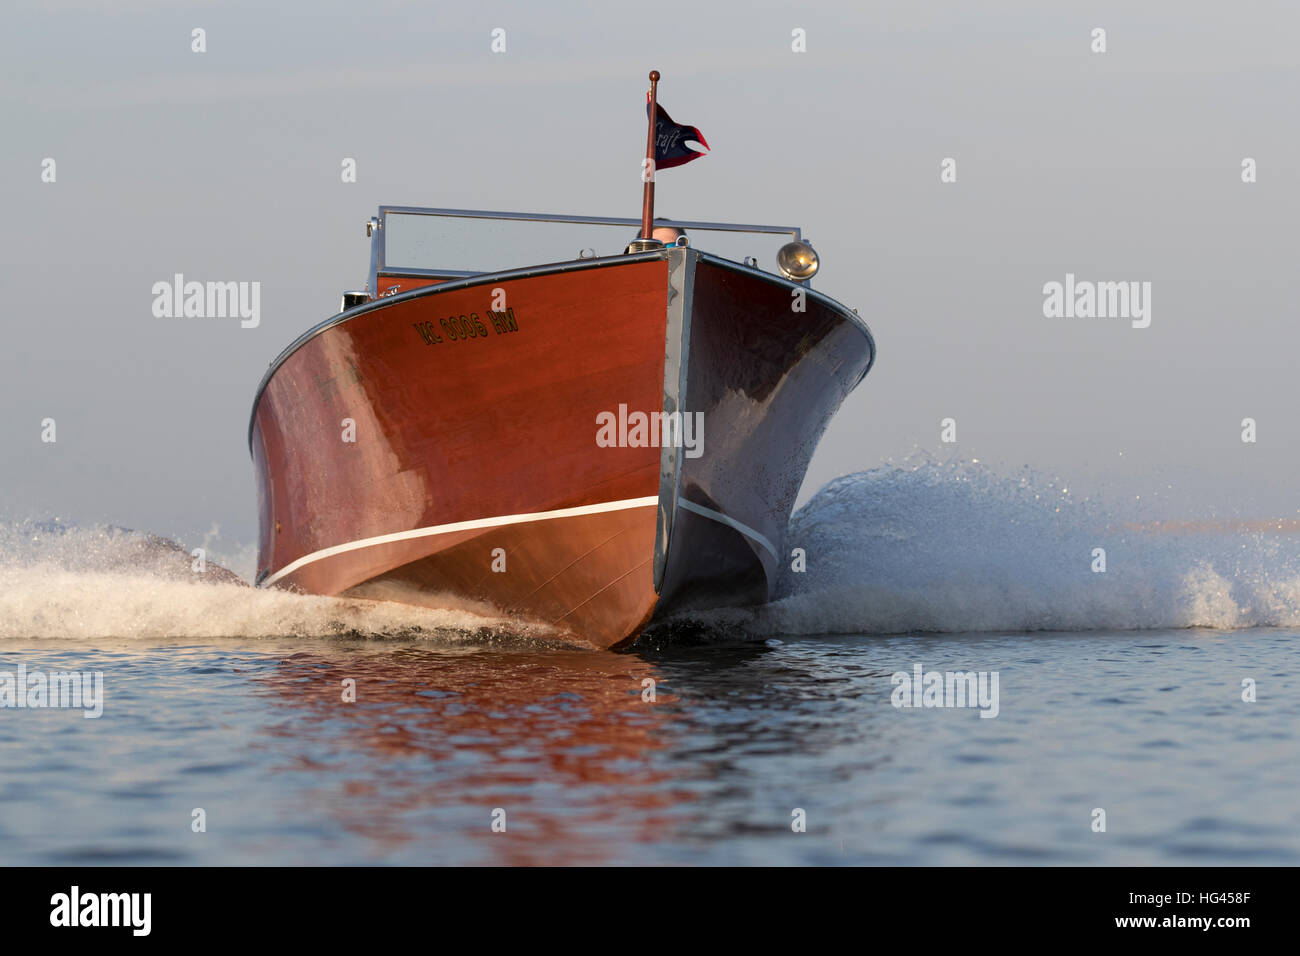 A fast approaching wood speedboat. - Stock Image